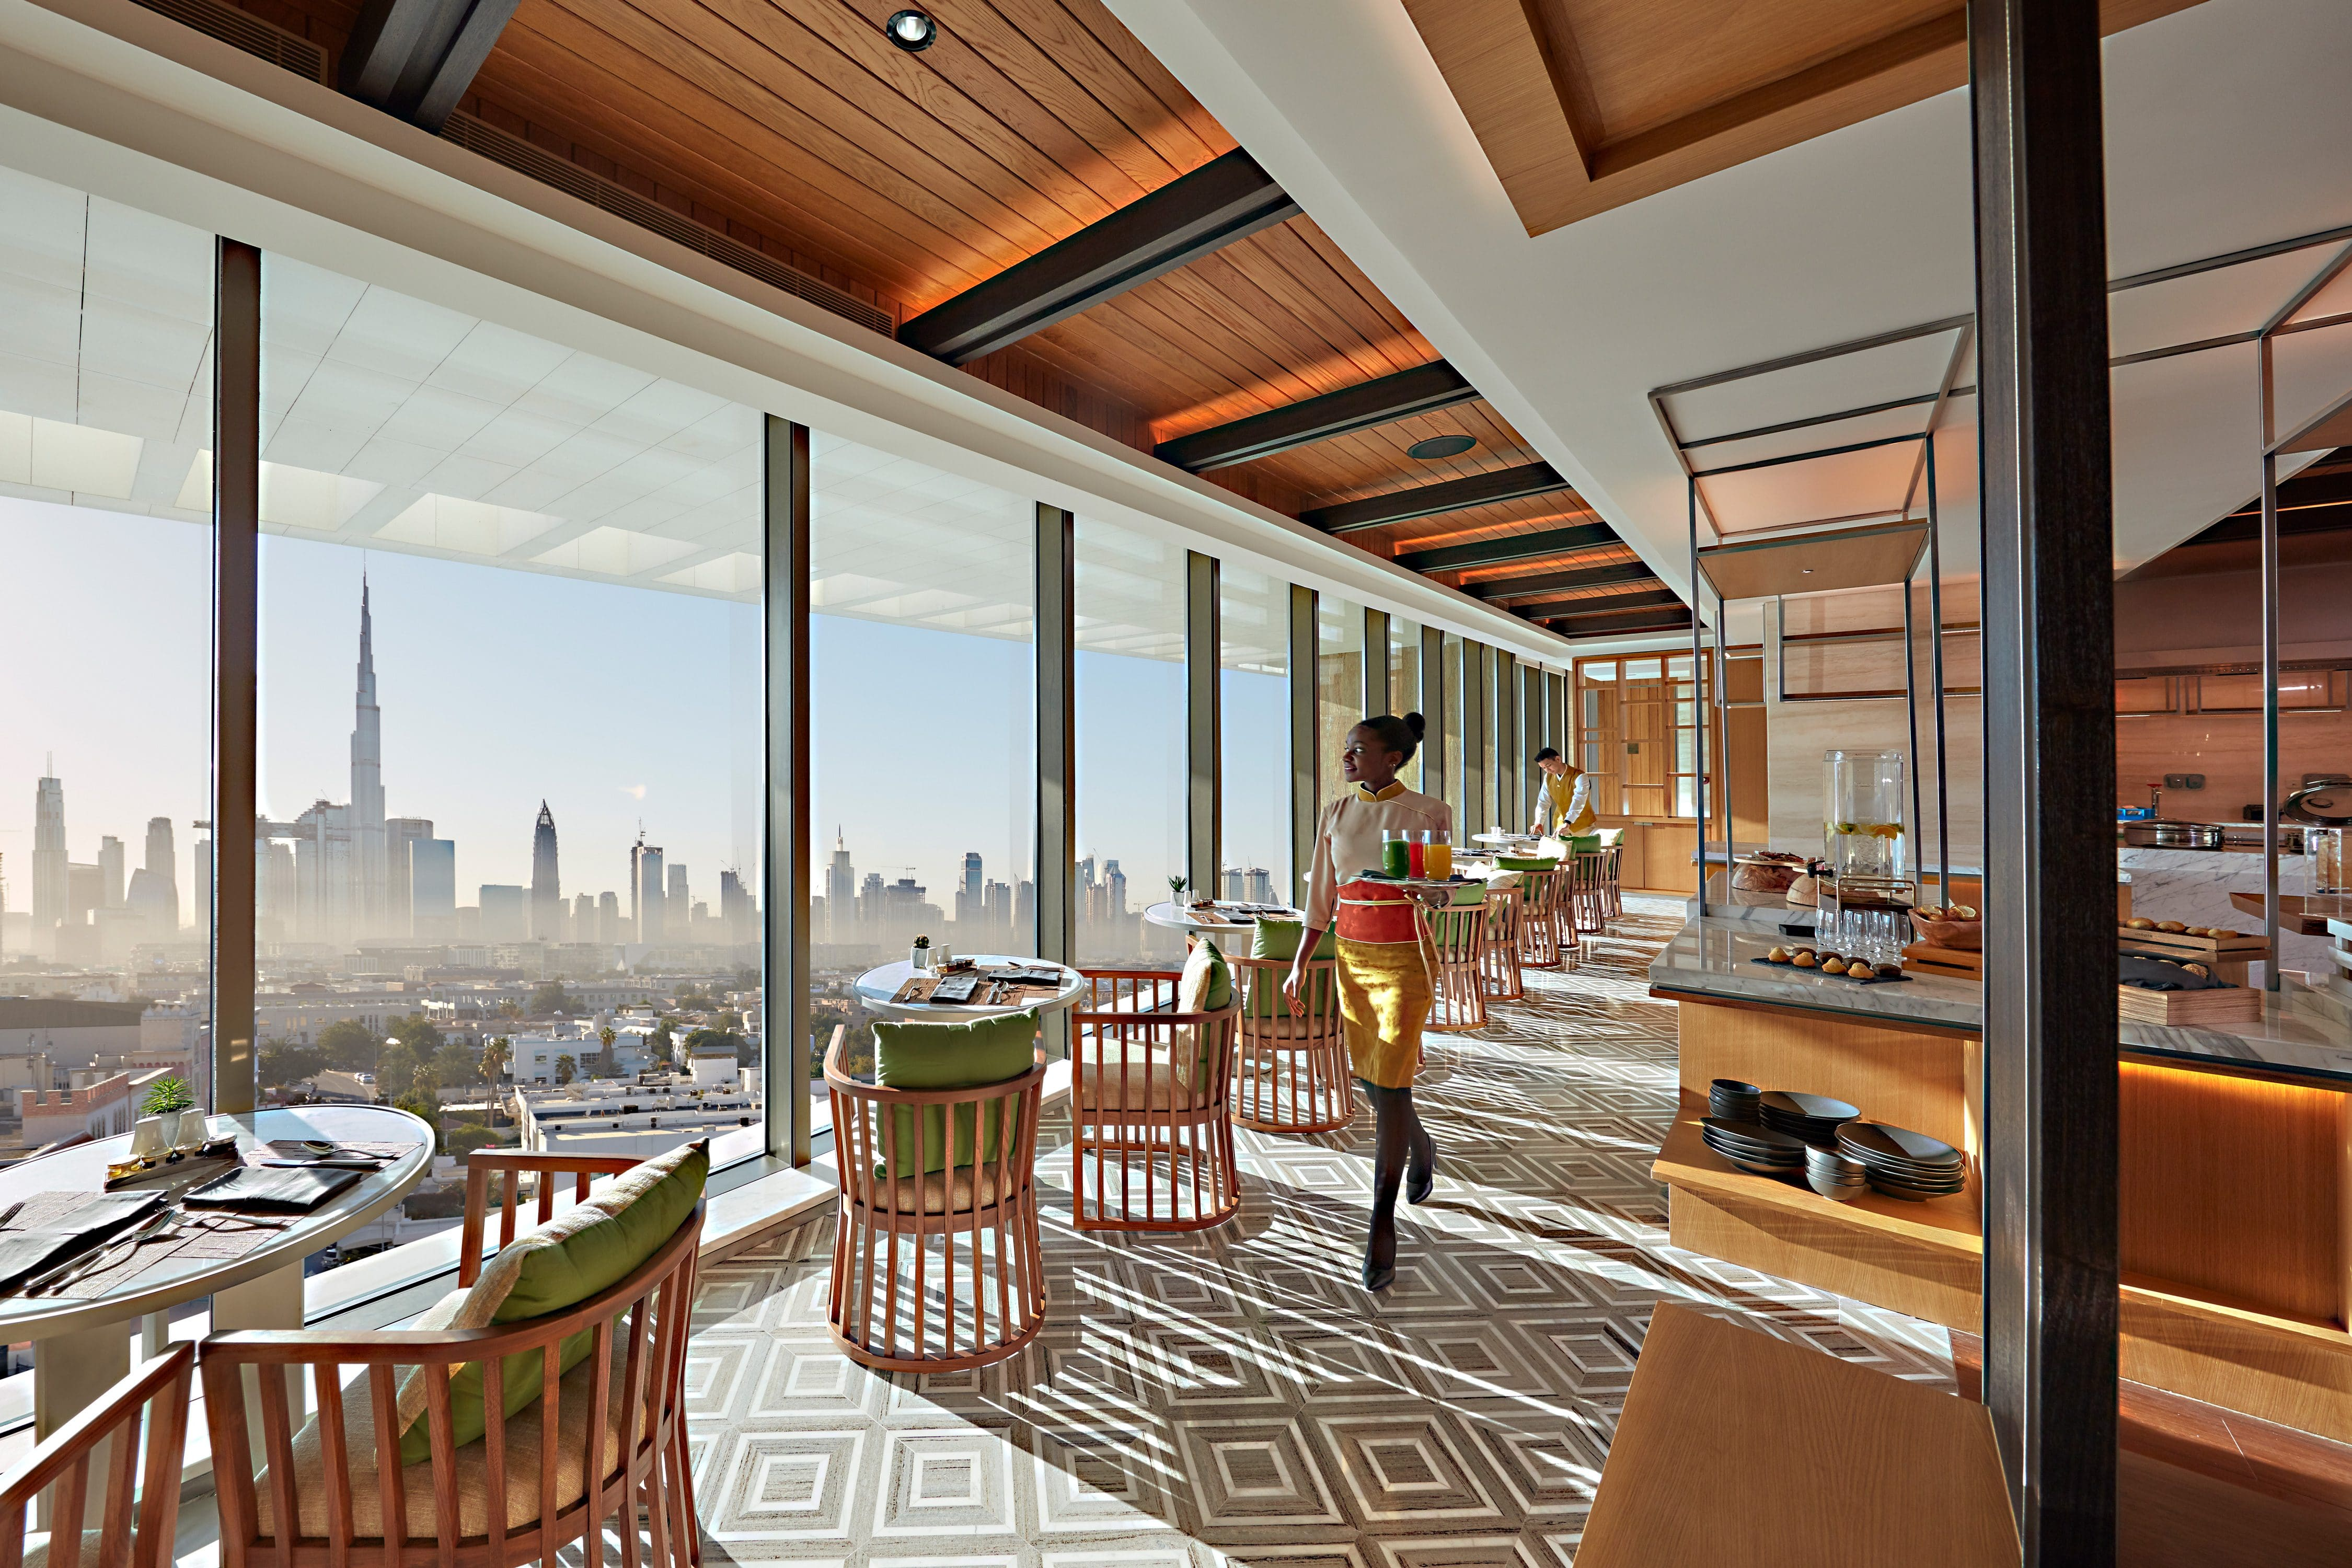 View from inside the Club Lounge through the floor-to-ceilings windows towards Downtown Dubai